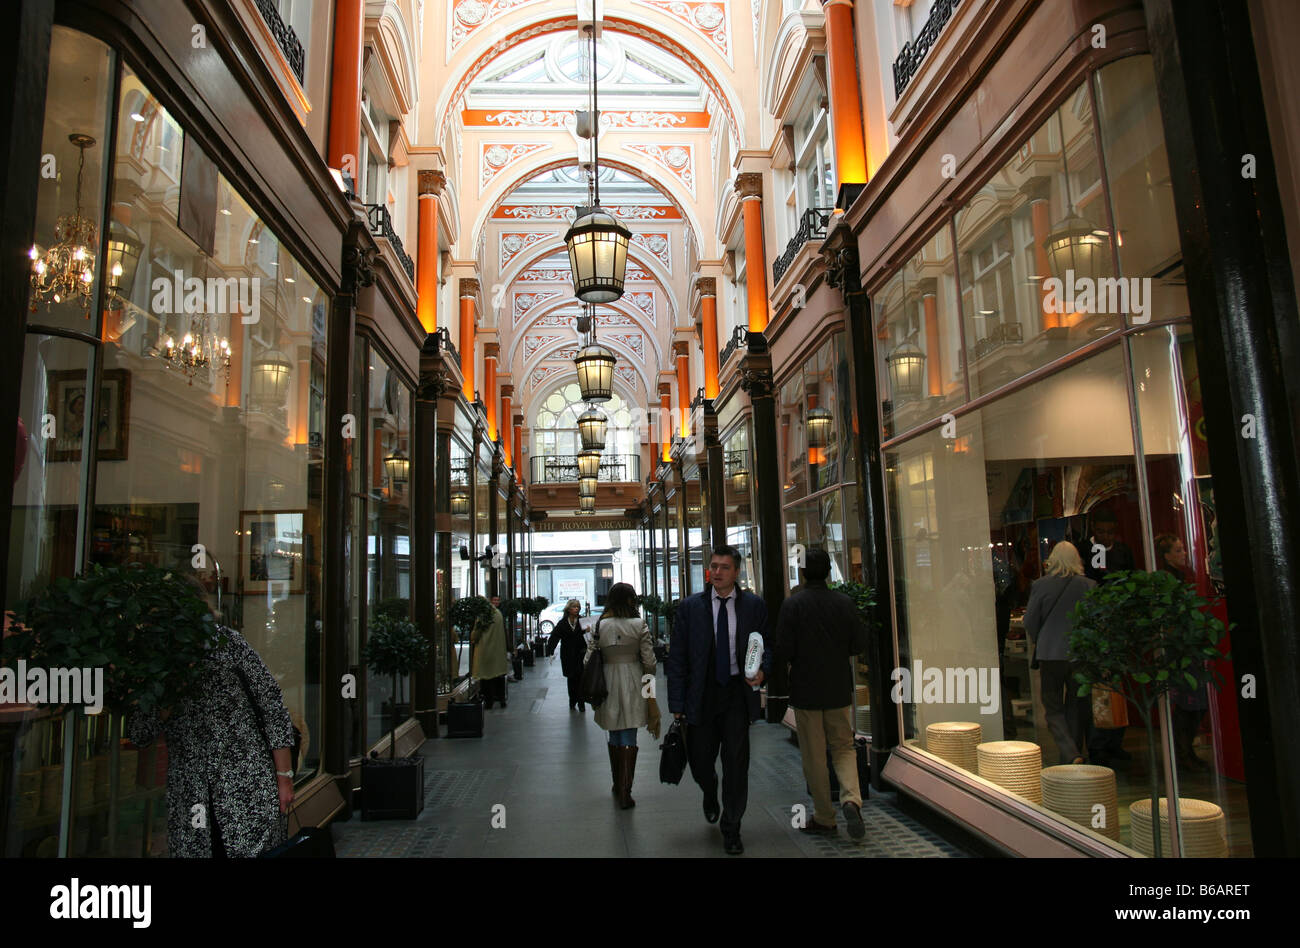 Royal Arcade, Bond Street, London - Stock Image